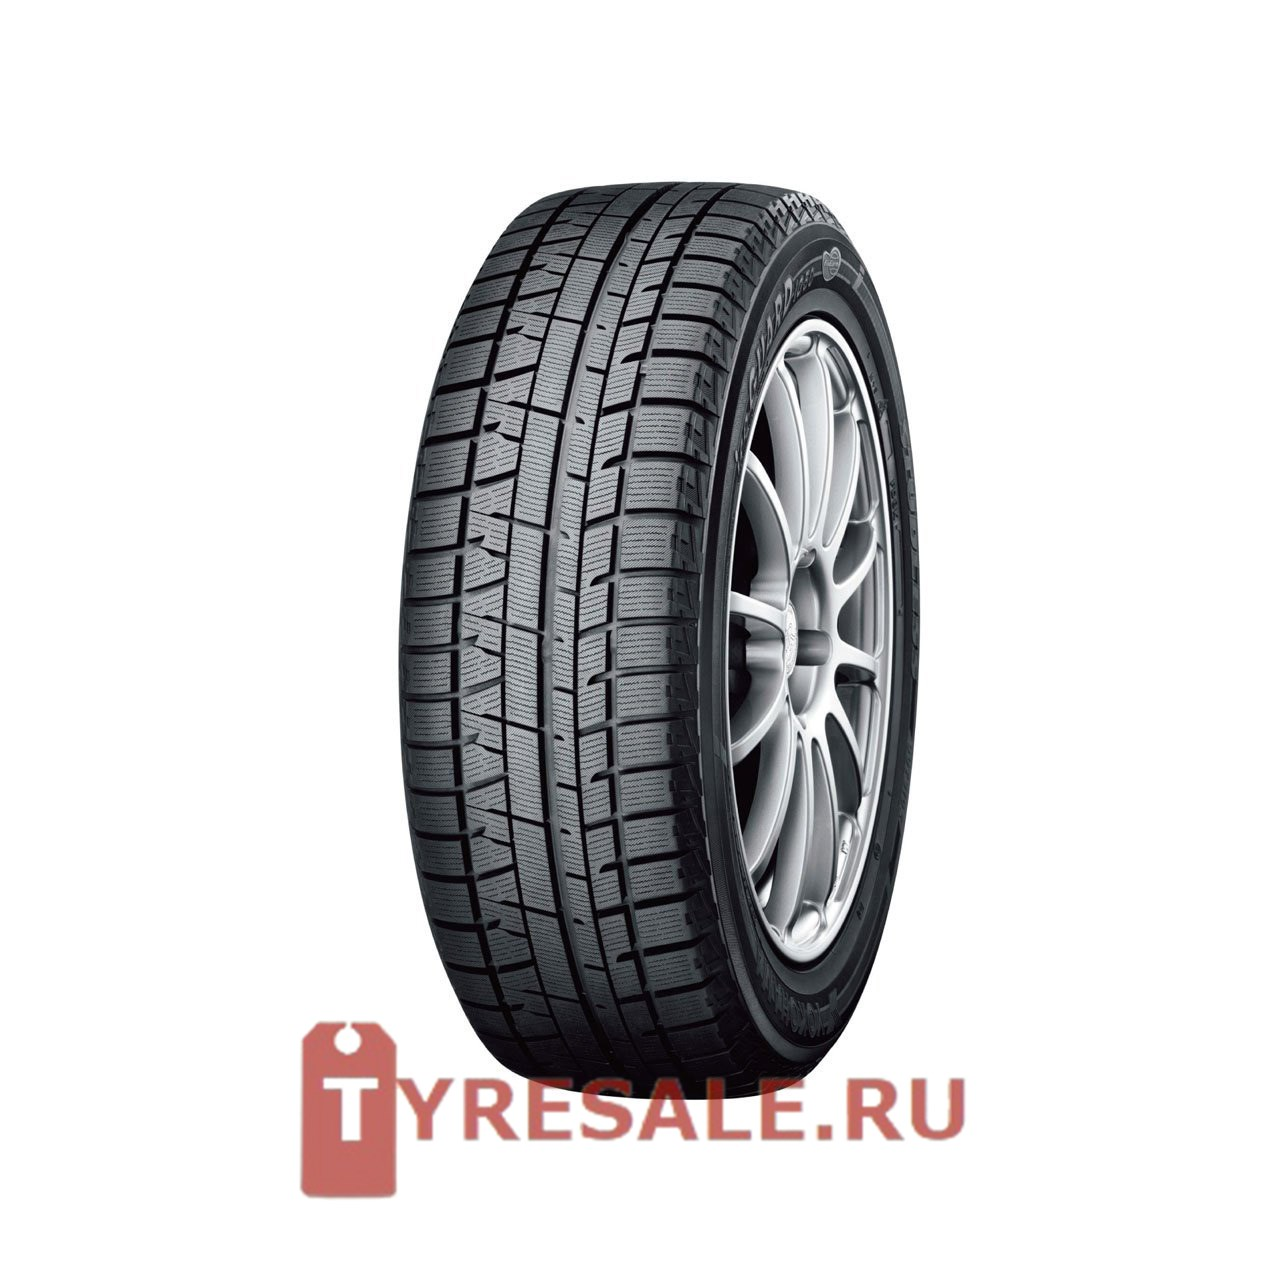 Yokohama Ice Guard IG50 Plus 205/55 R16 91 Q